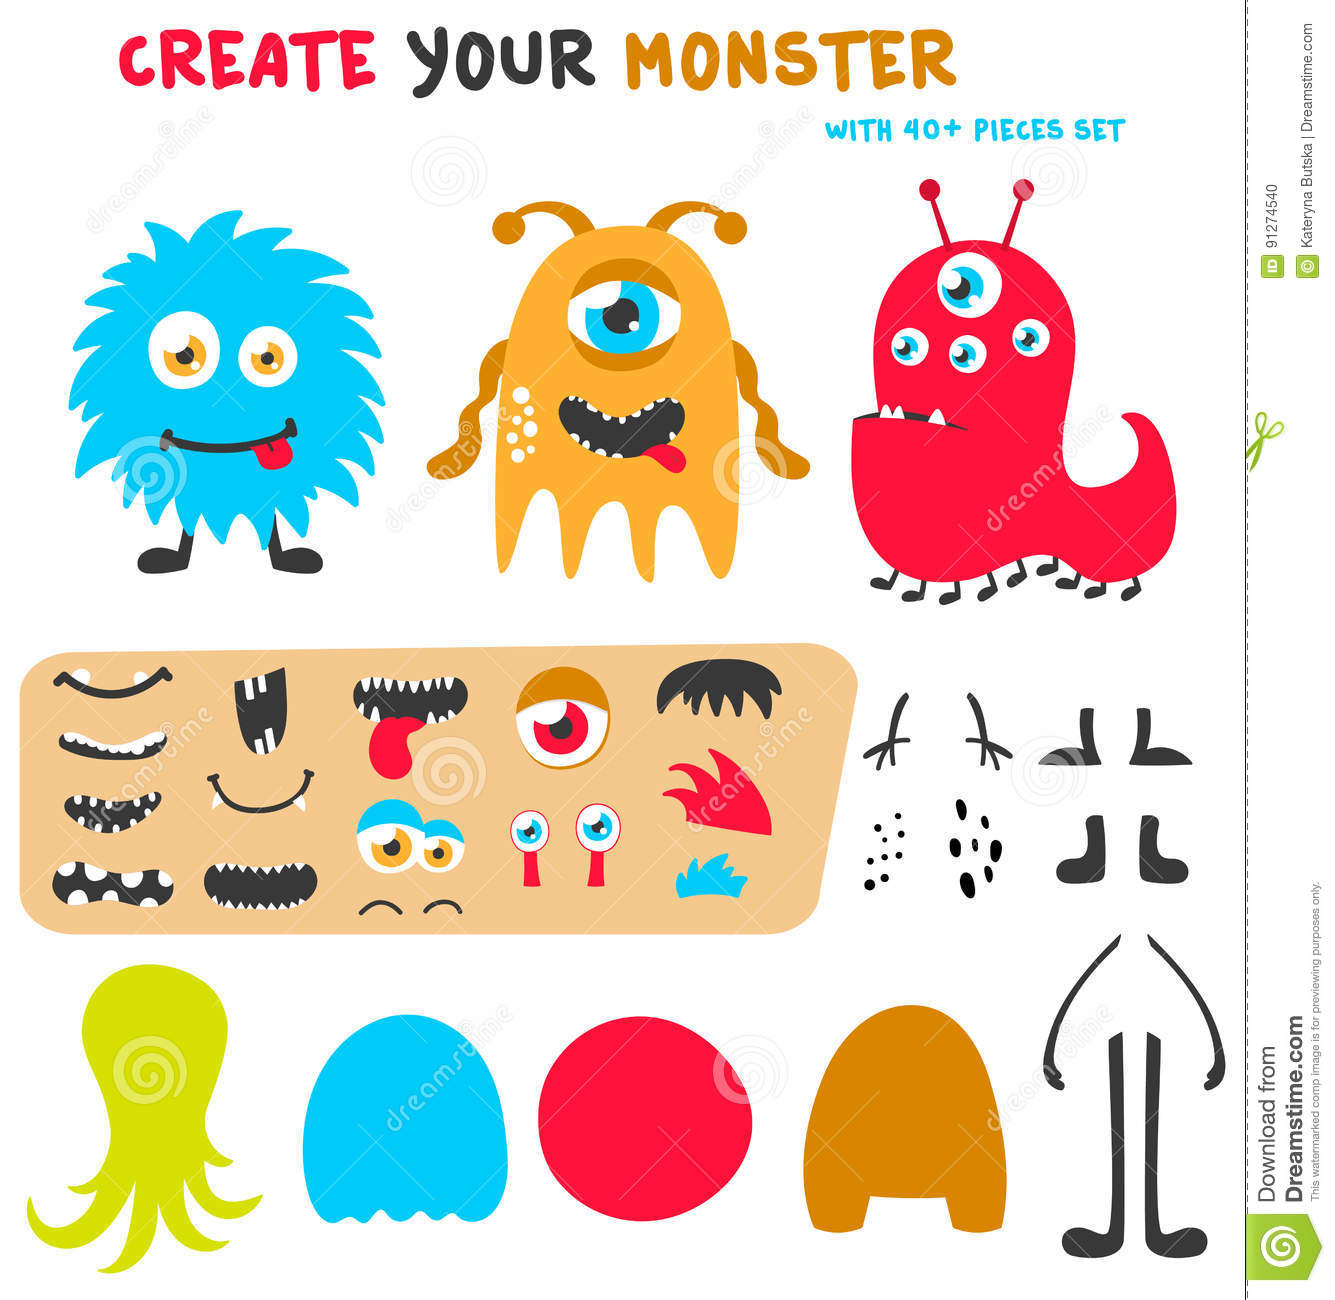 Cartoon Funny Monsters Creation Kit Create Your Own